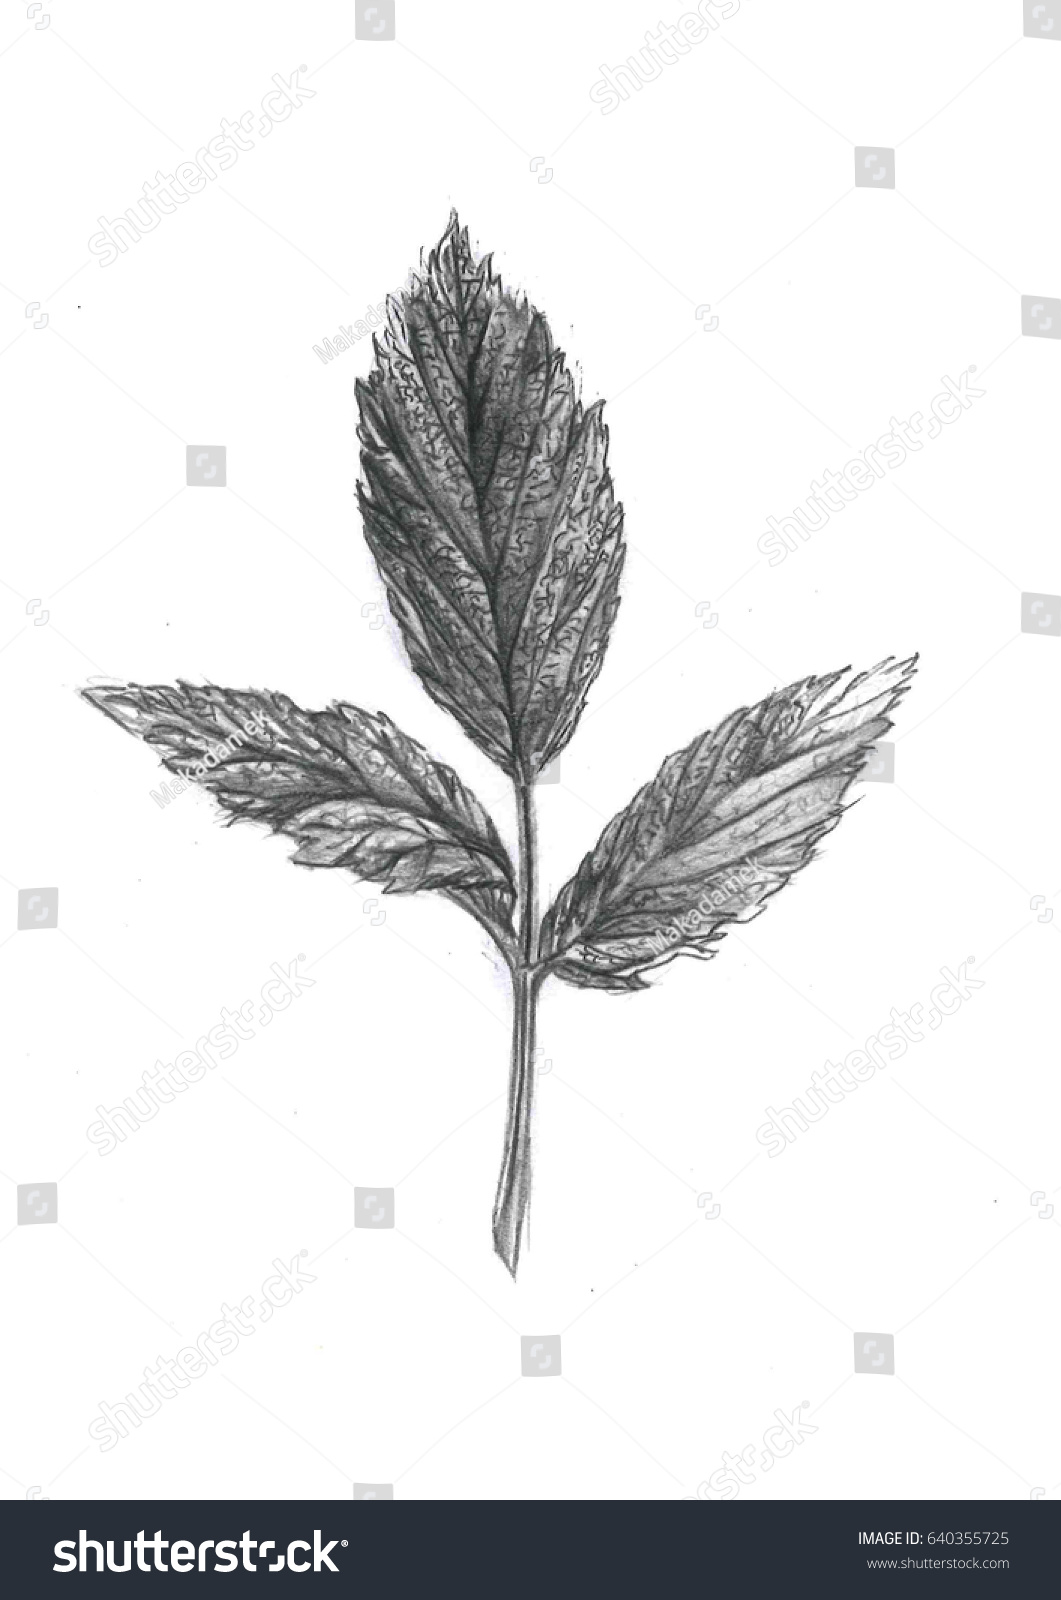 It is the uncolored illustration of the leaf it is pencil sketch suite into the